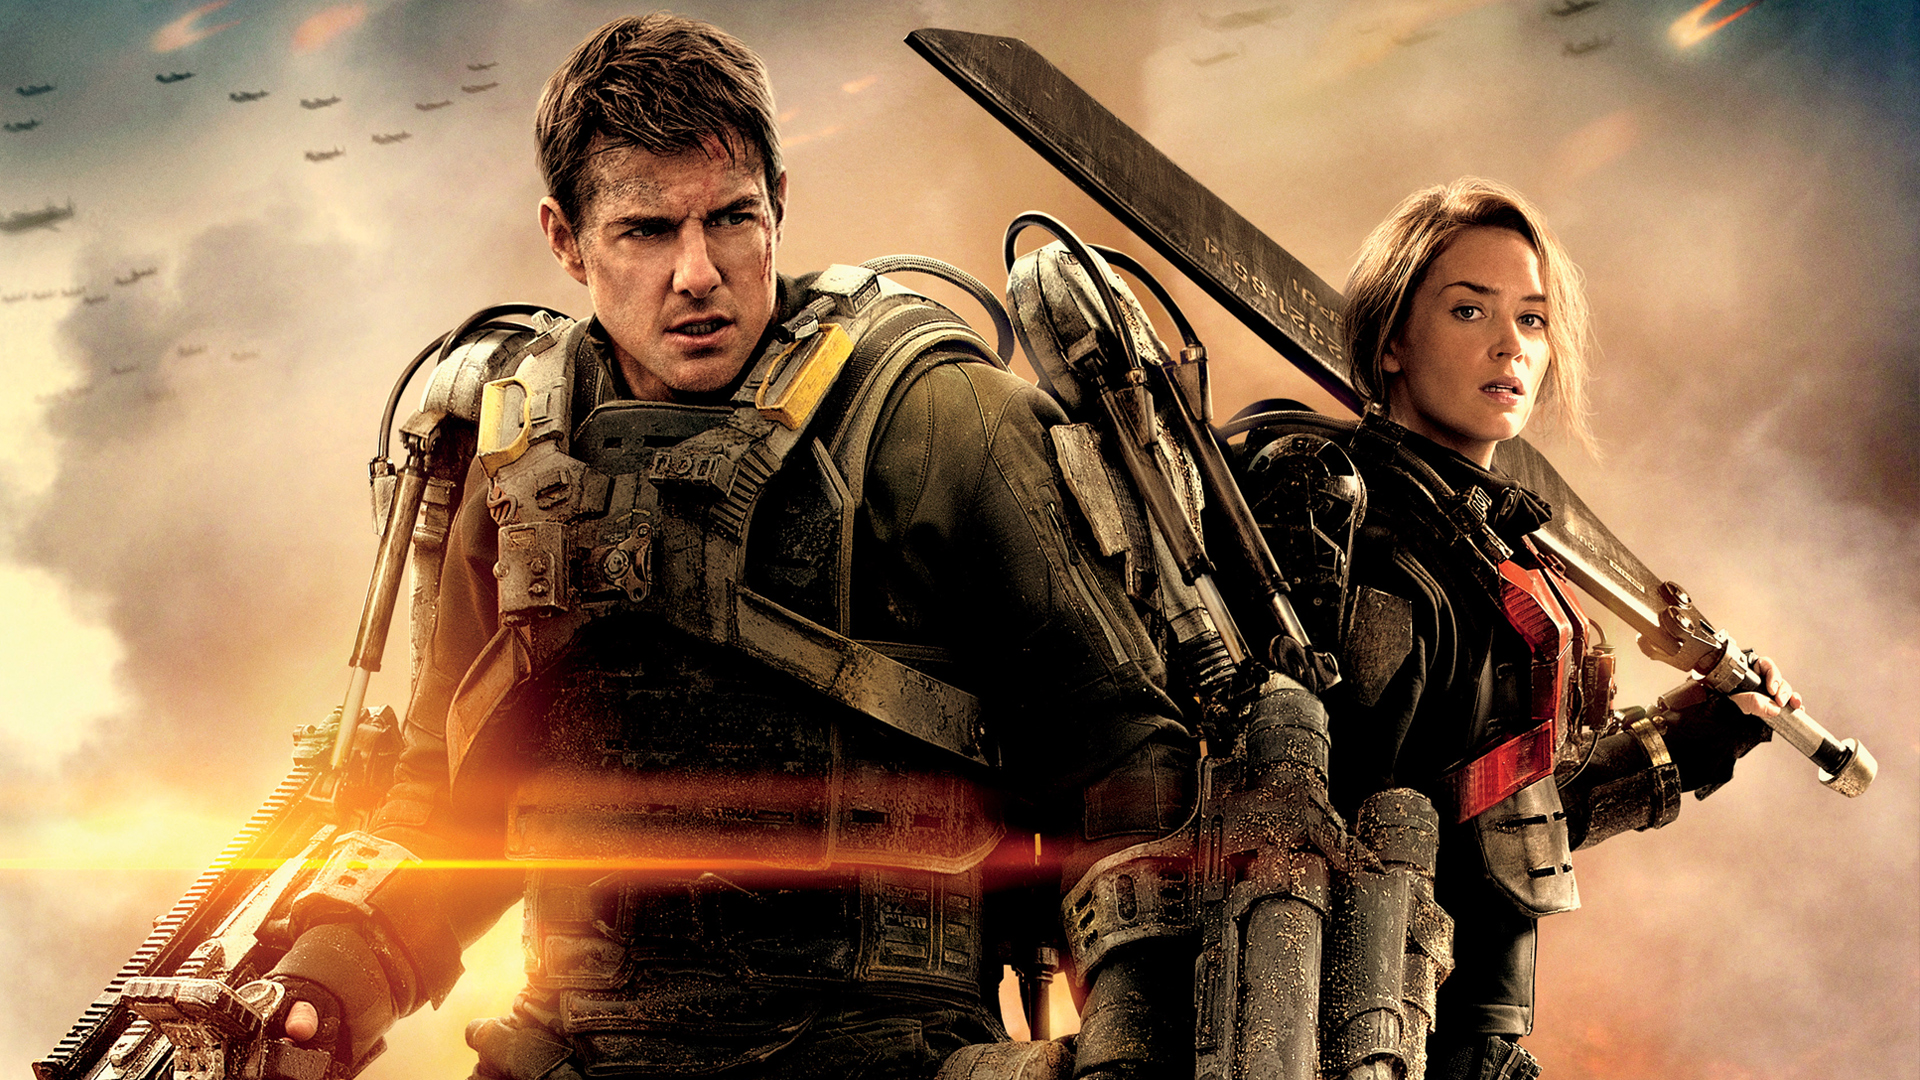 Edge Of Tomorrow Wallpaper 1080p 5